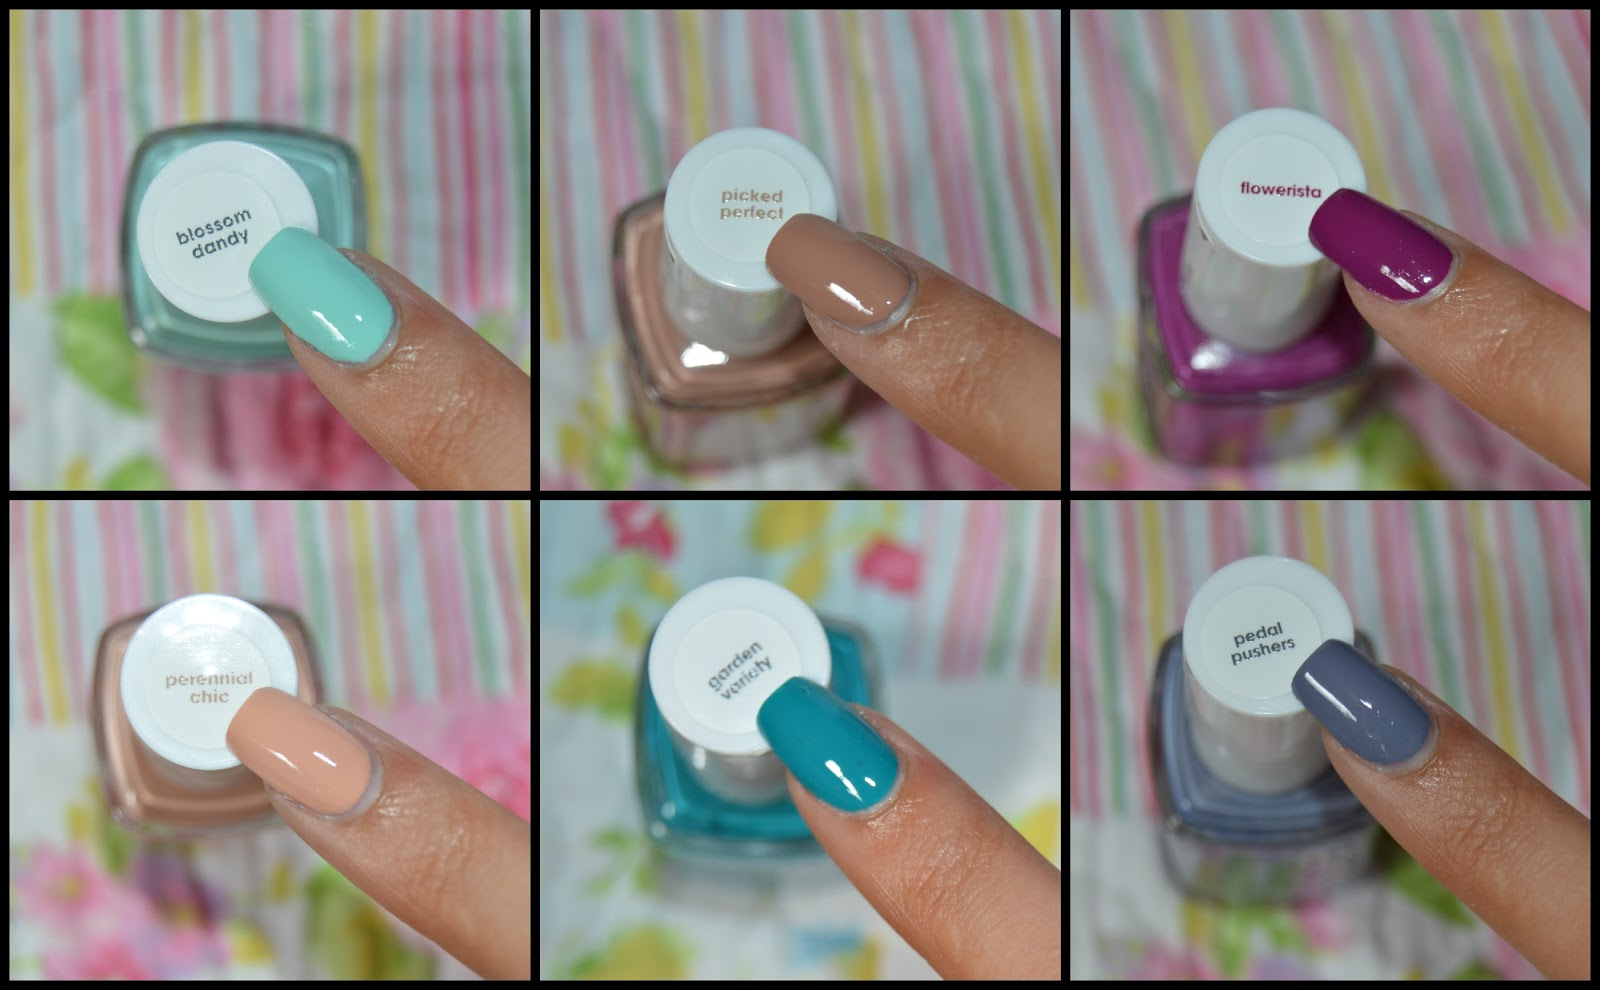 Sweetfaction: SWATCHES COLECCIÓN PRIMAVERA 2015 DE ESSIE